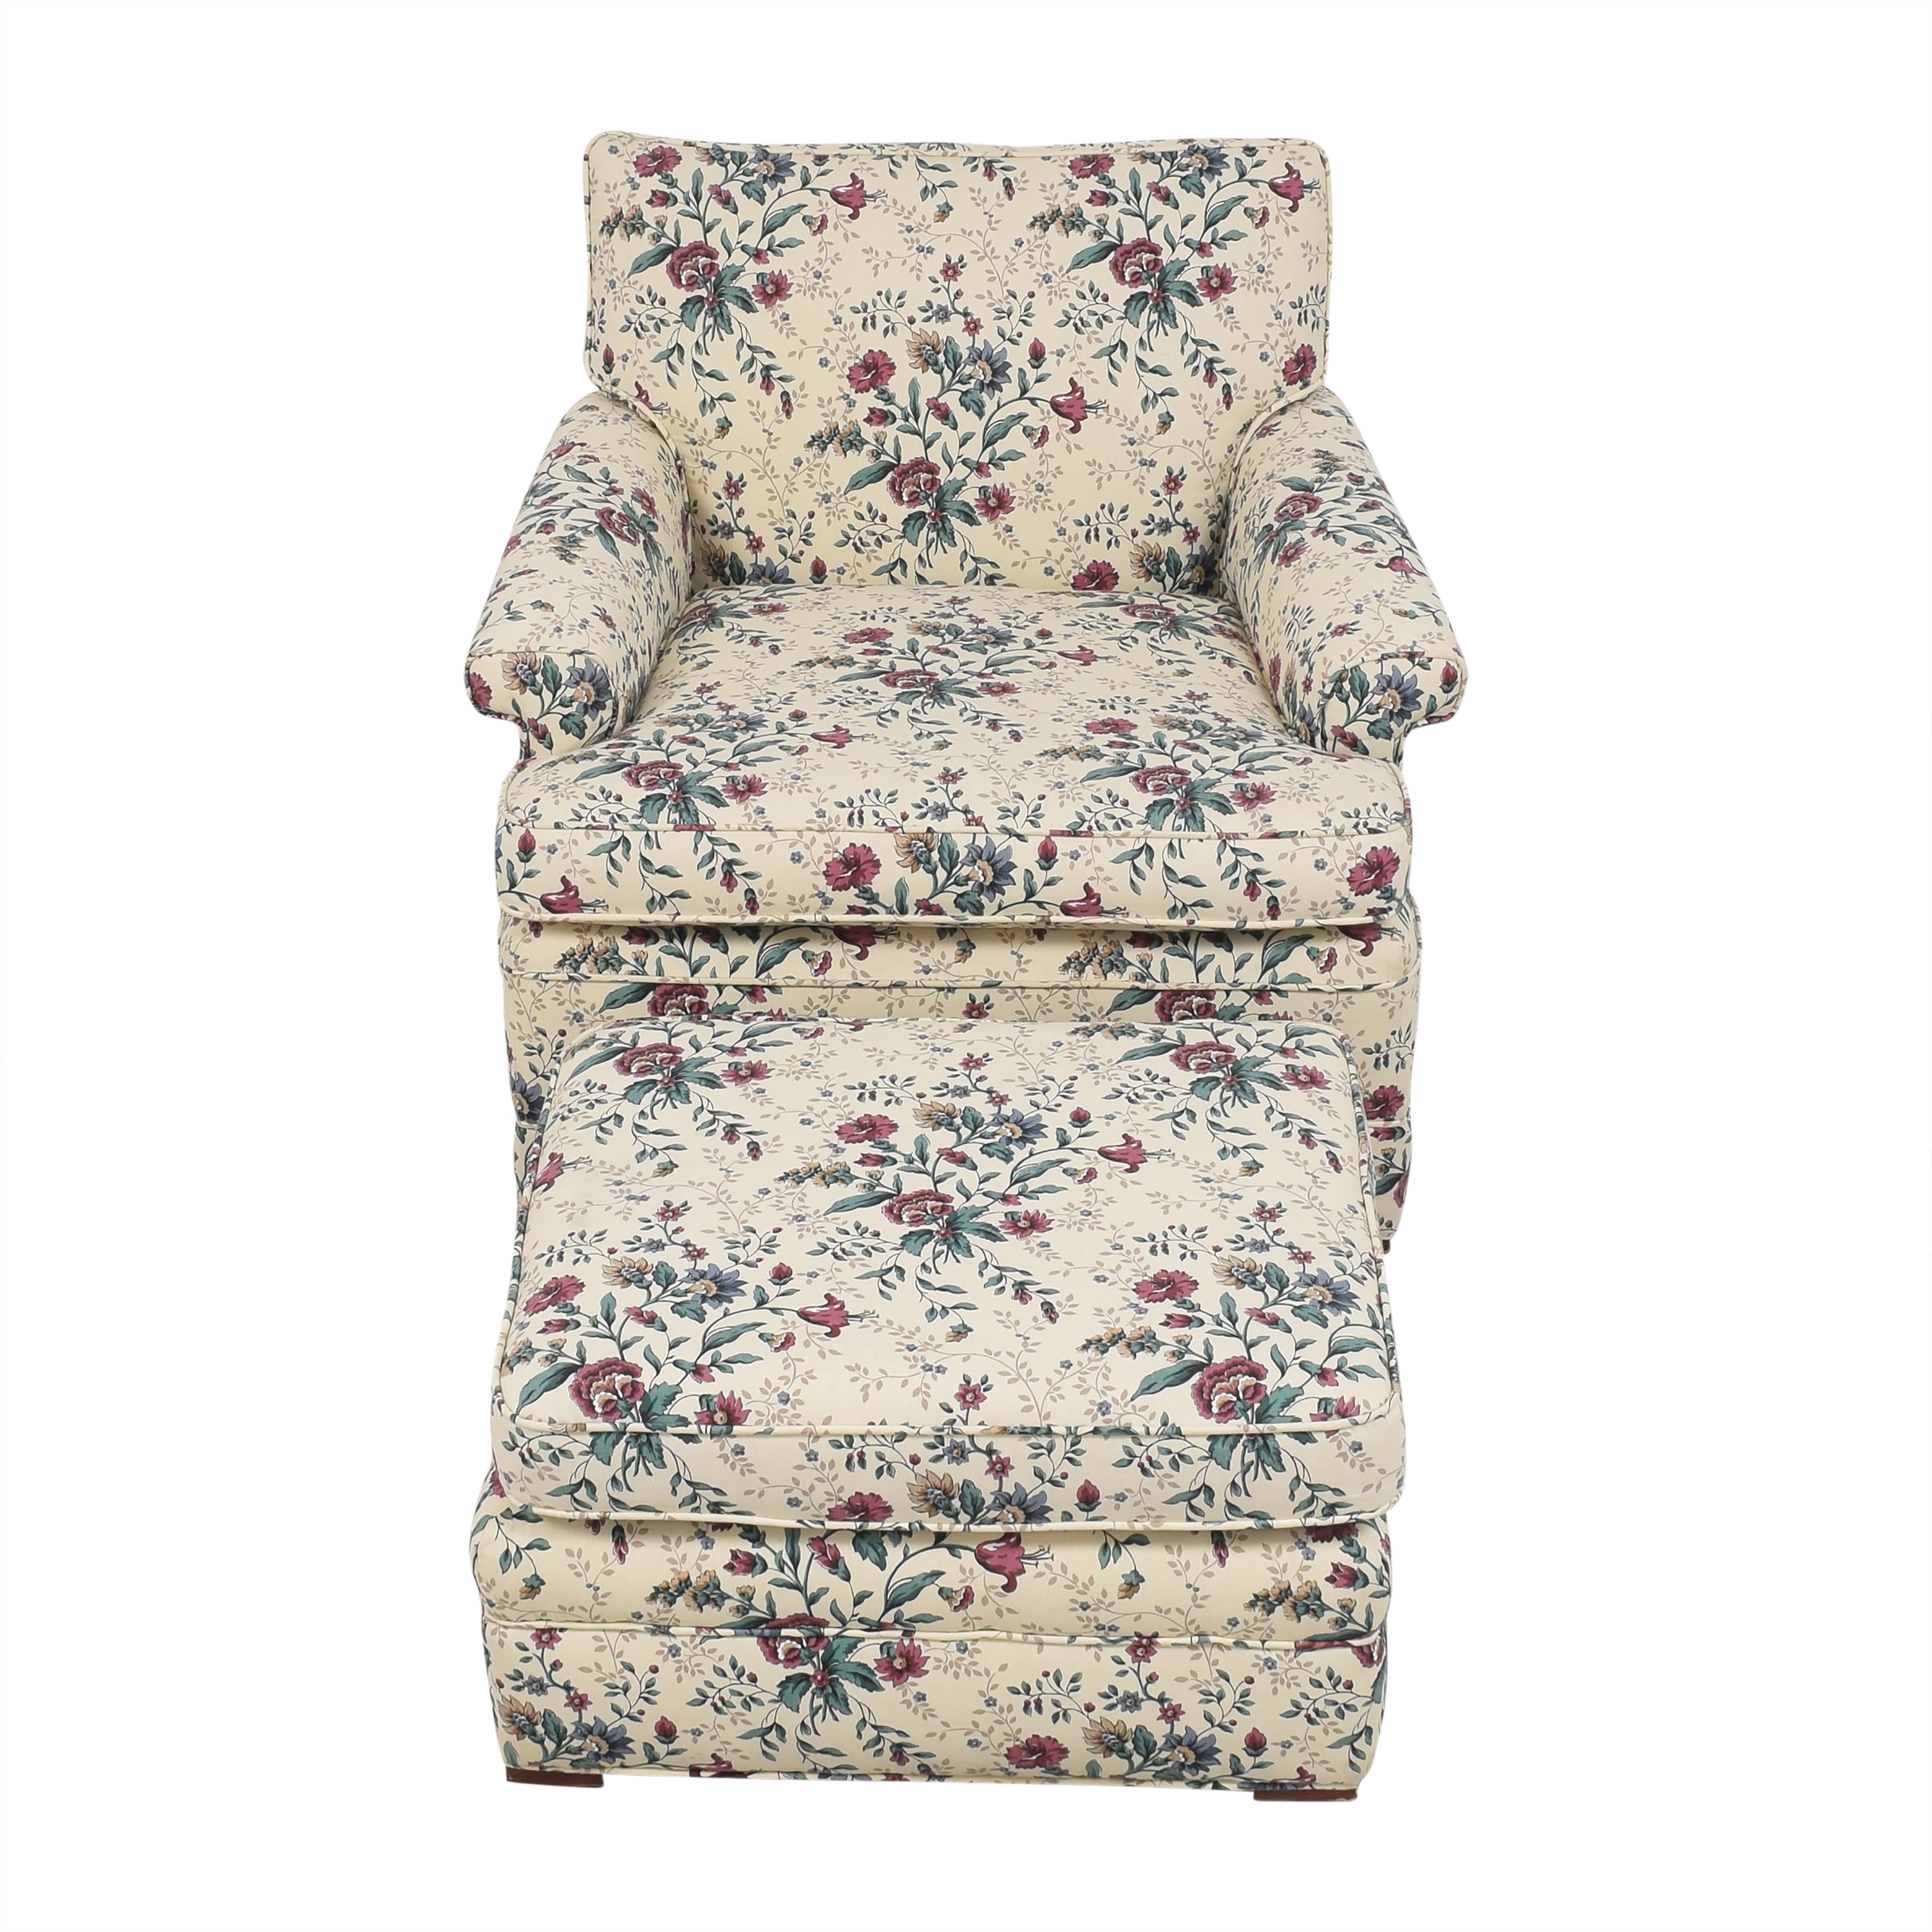 Floral Accent Chair with Ottoman second hand